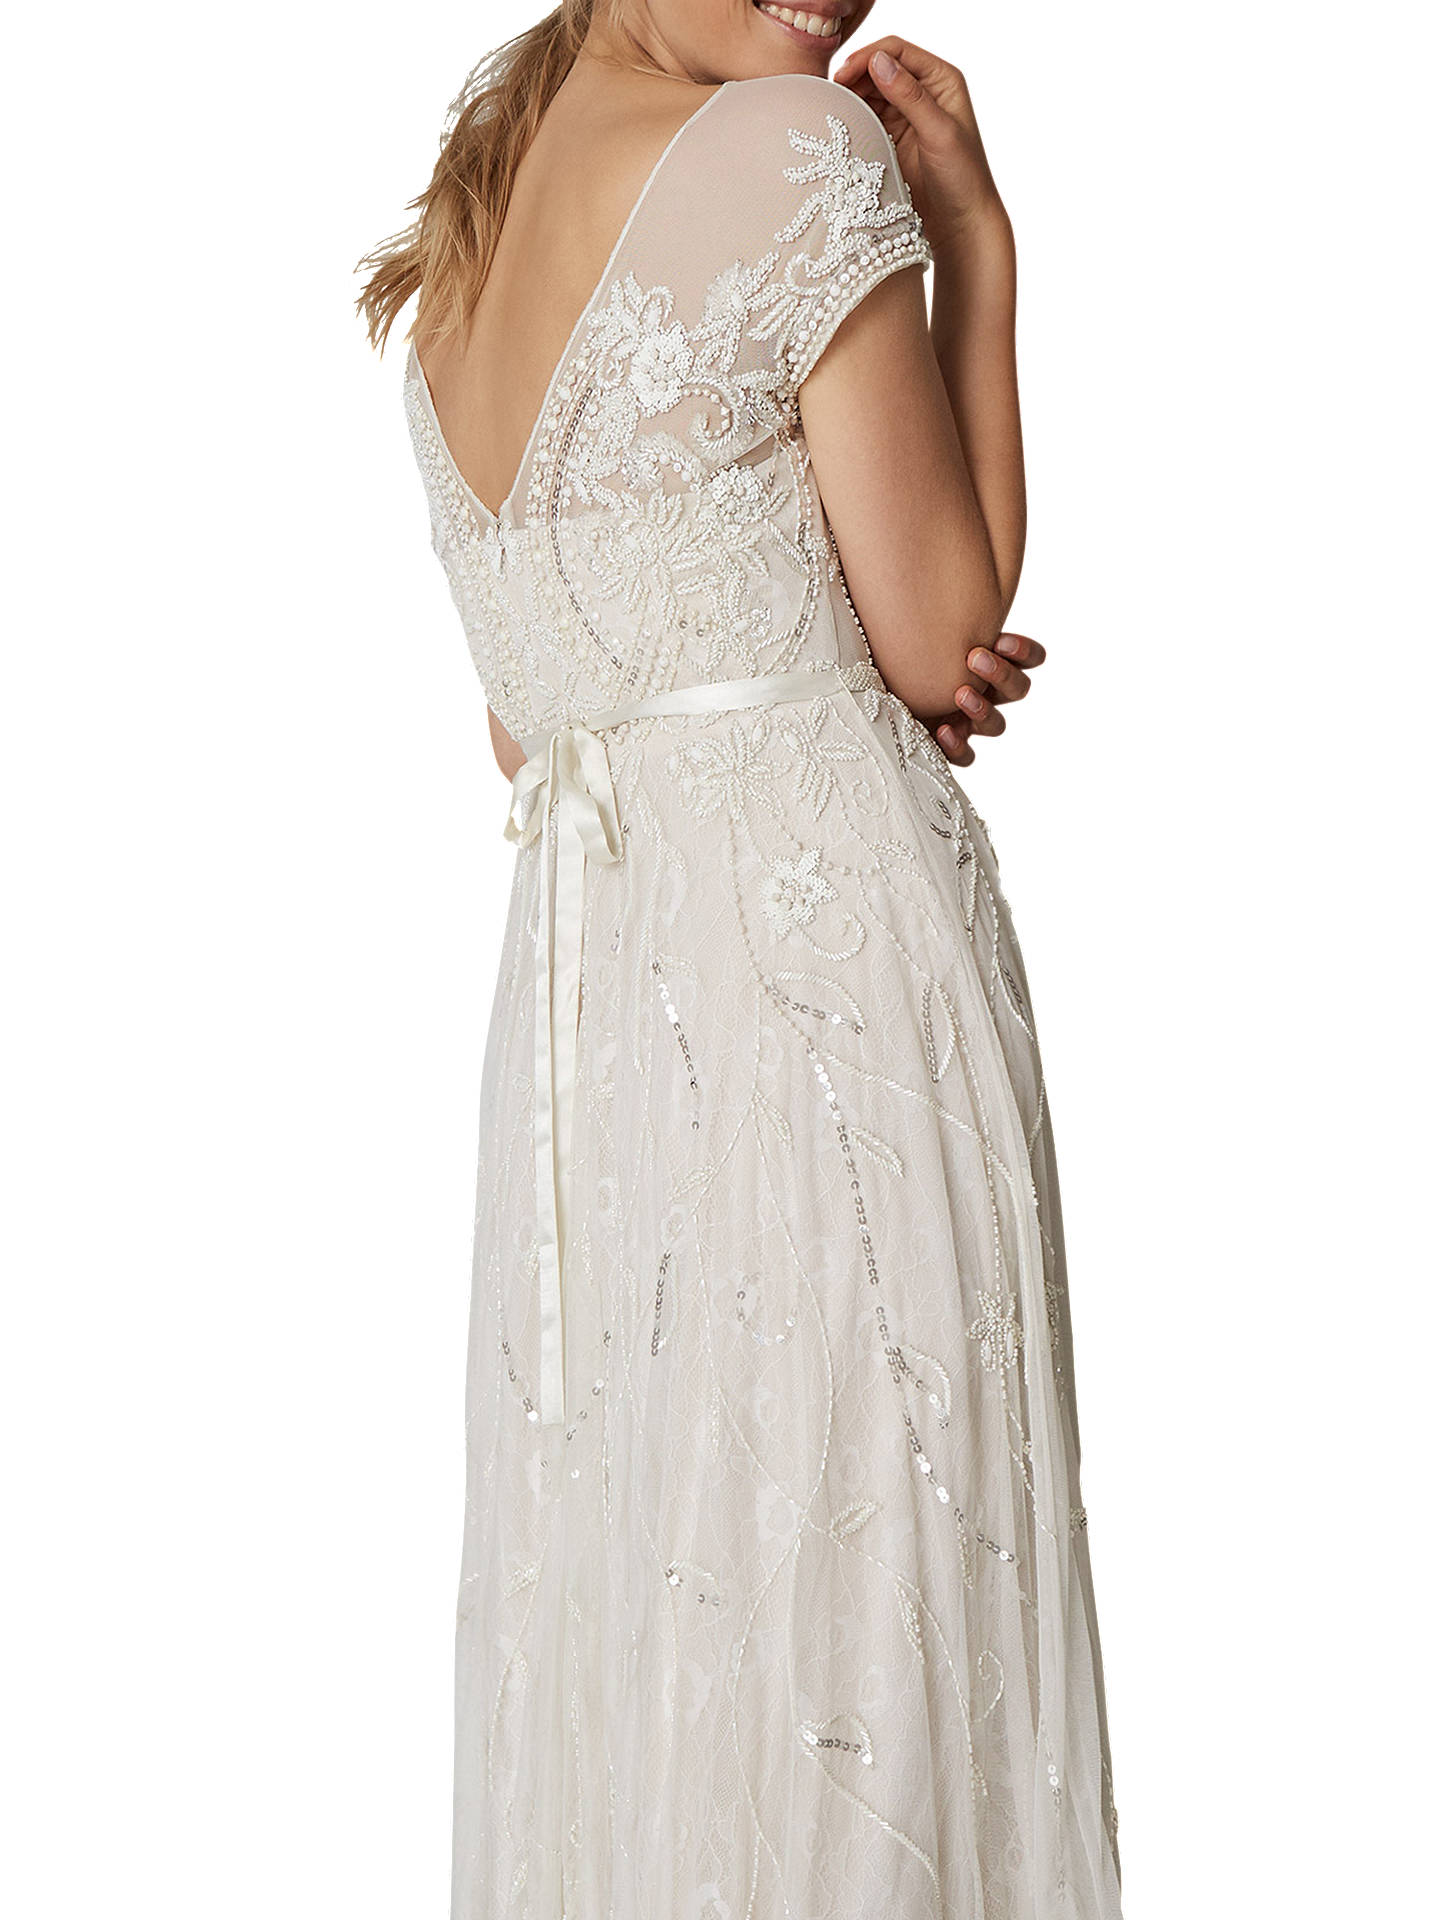 Buy Phase Eight Bridal Embellished Liliana Wedding Dress, White Snow, 6 Online at johnlewis.com